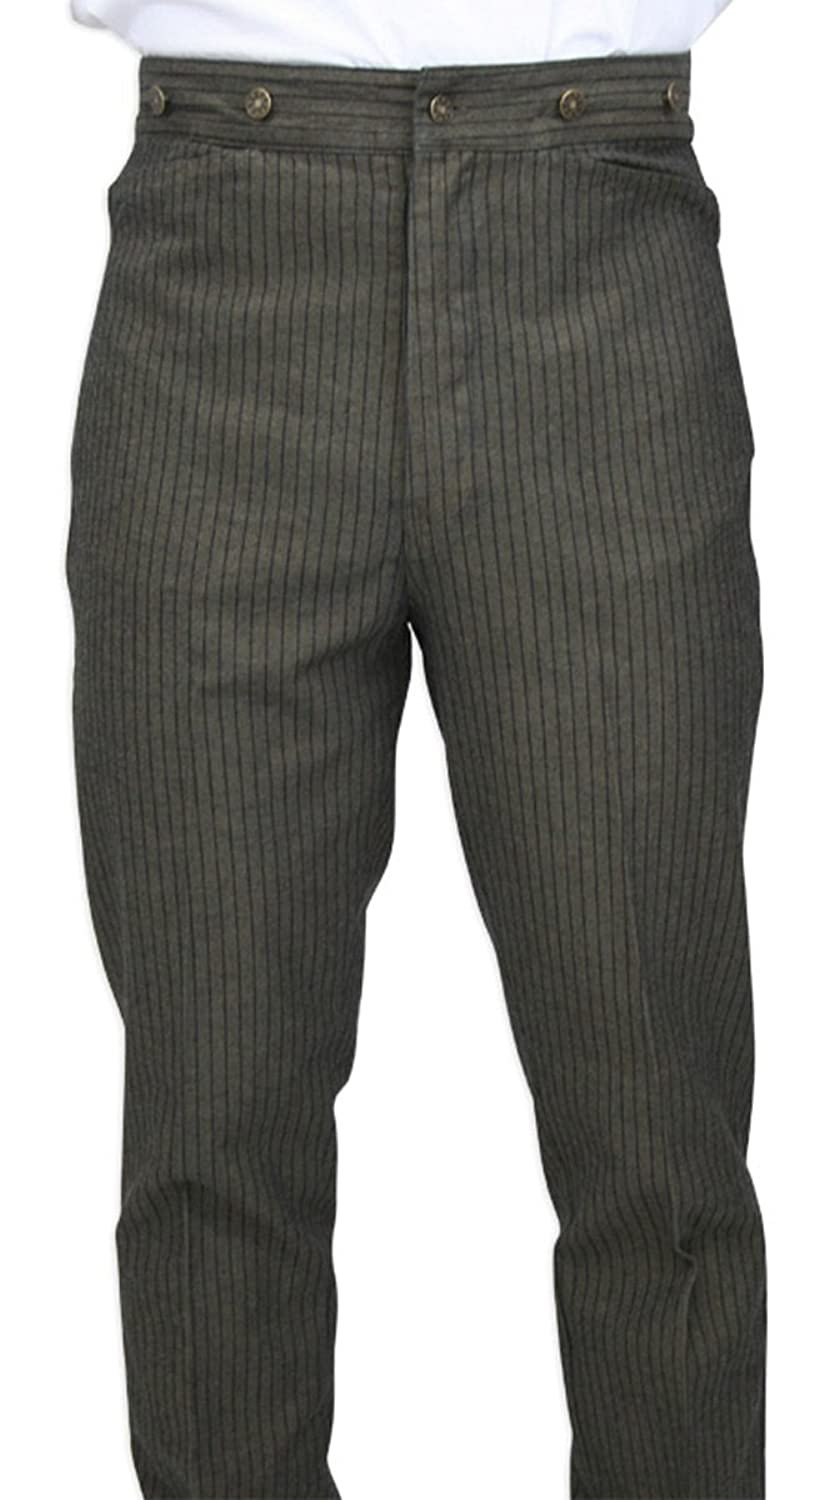 Victorian Men's Clothing High Waist Cotton Ludlow Striped Trousers $59.95 AT vintagedancer.com